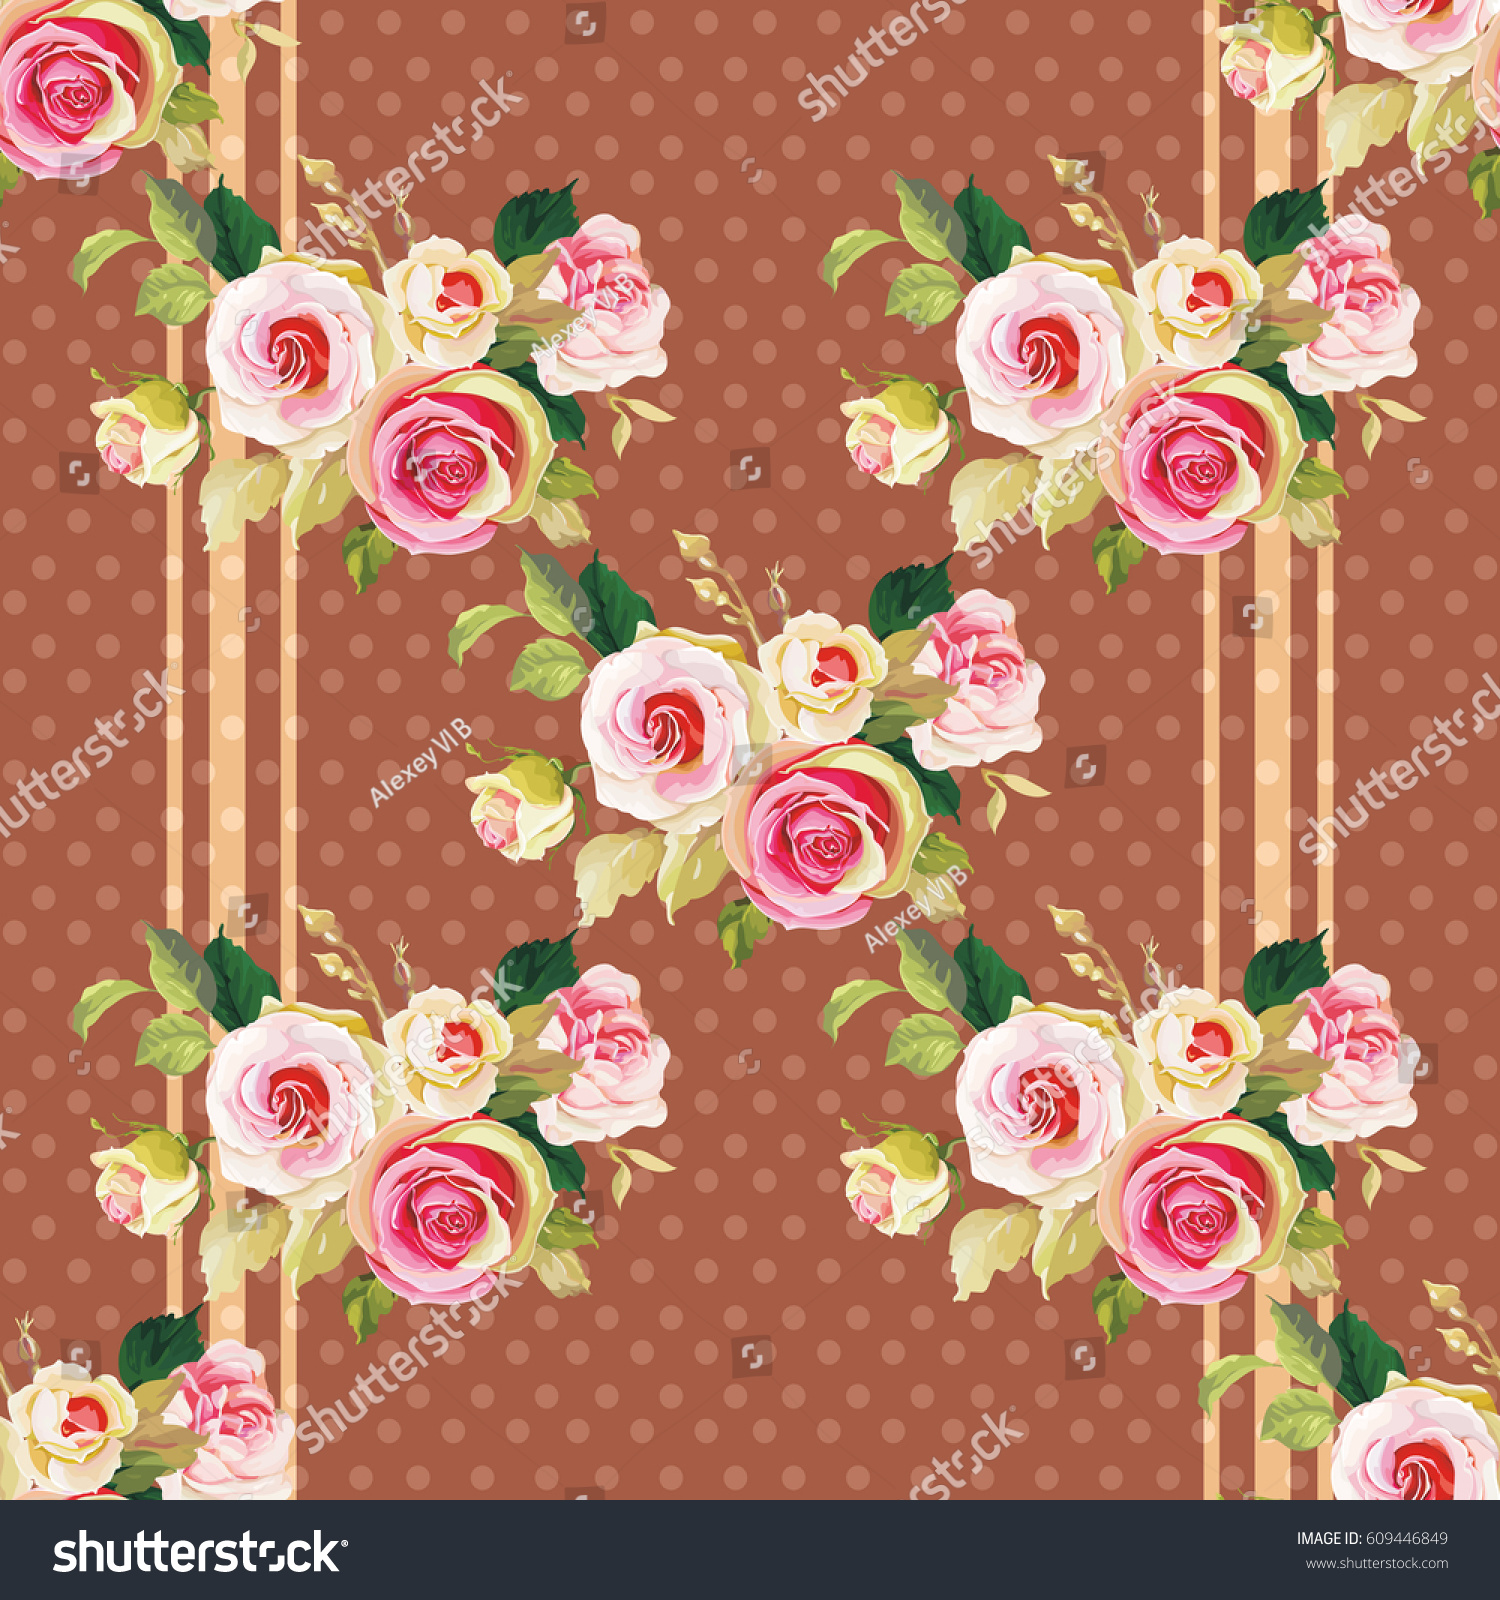 Seamless Floral Pattern Wonderful Roses Vector Stock ...